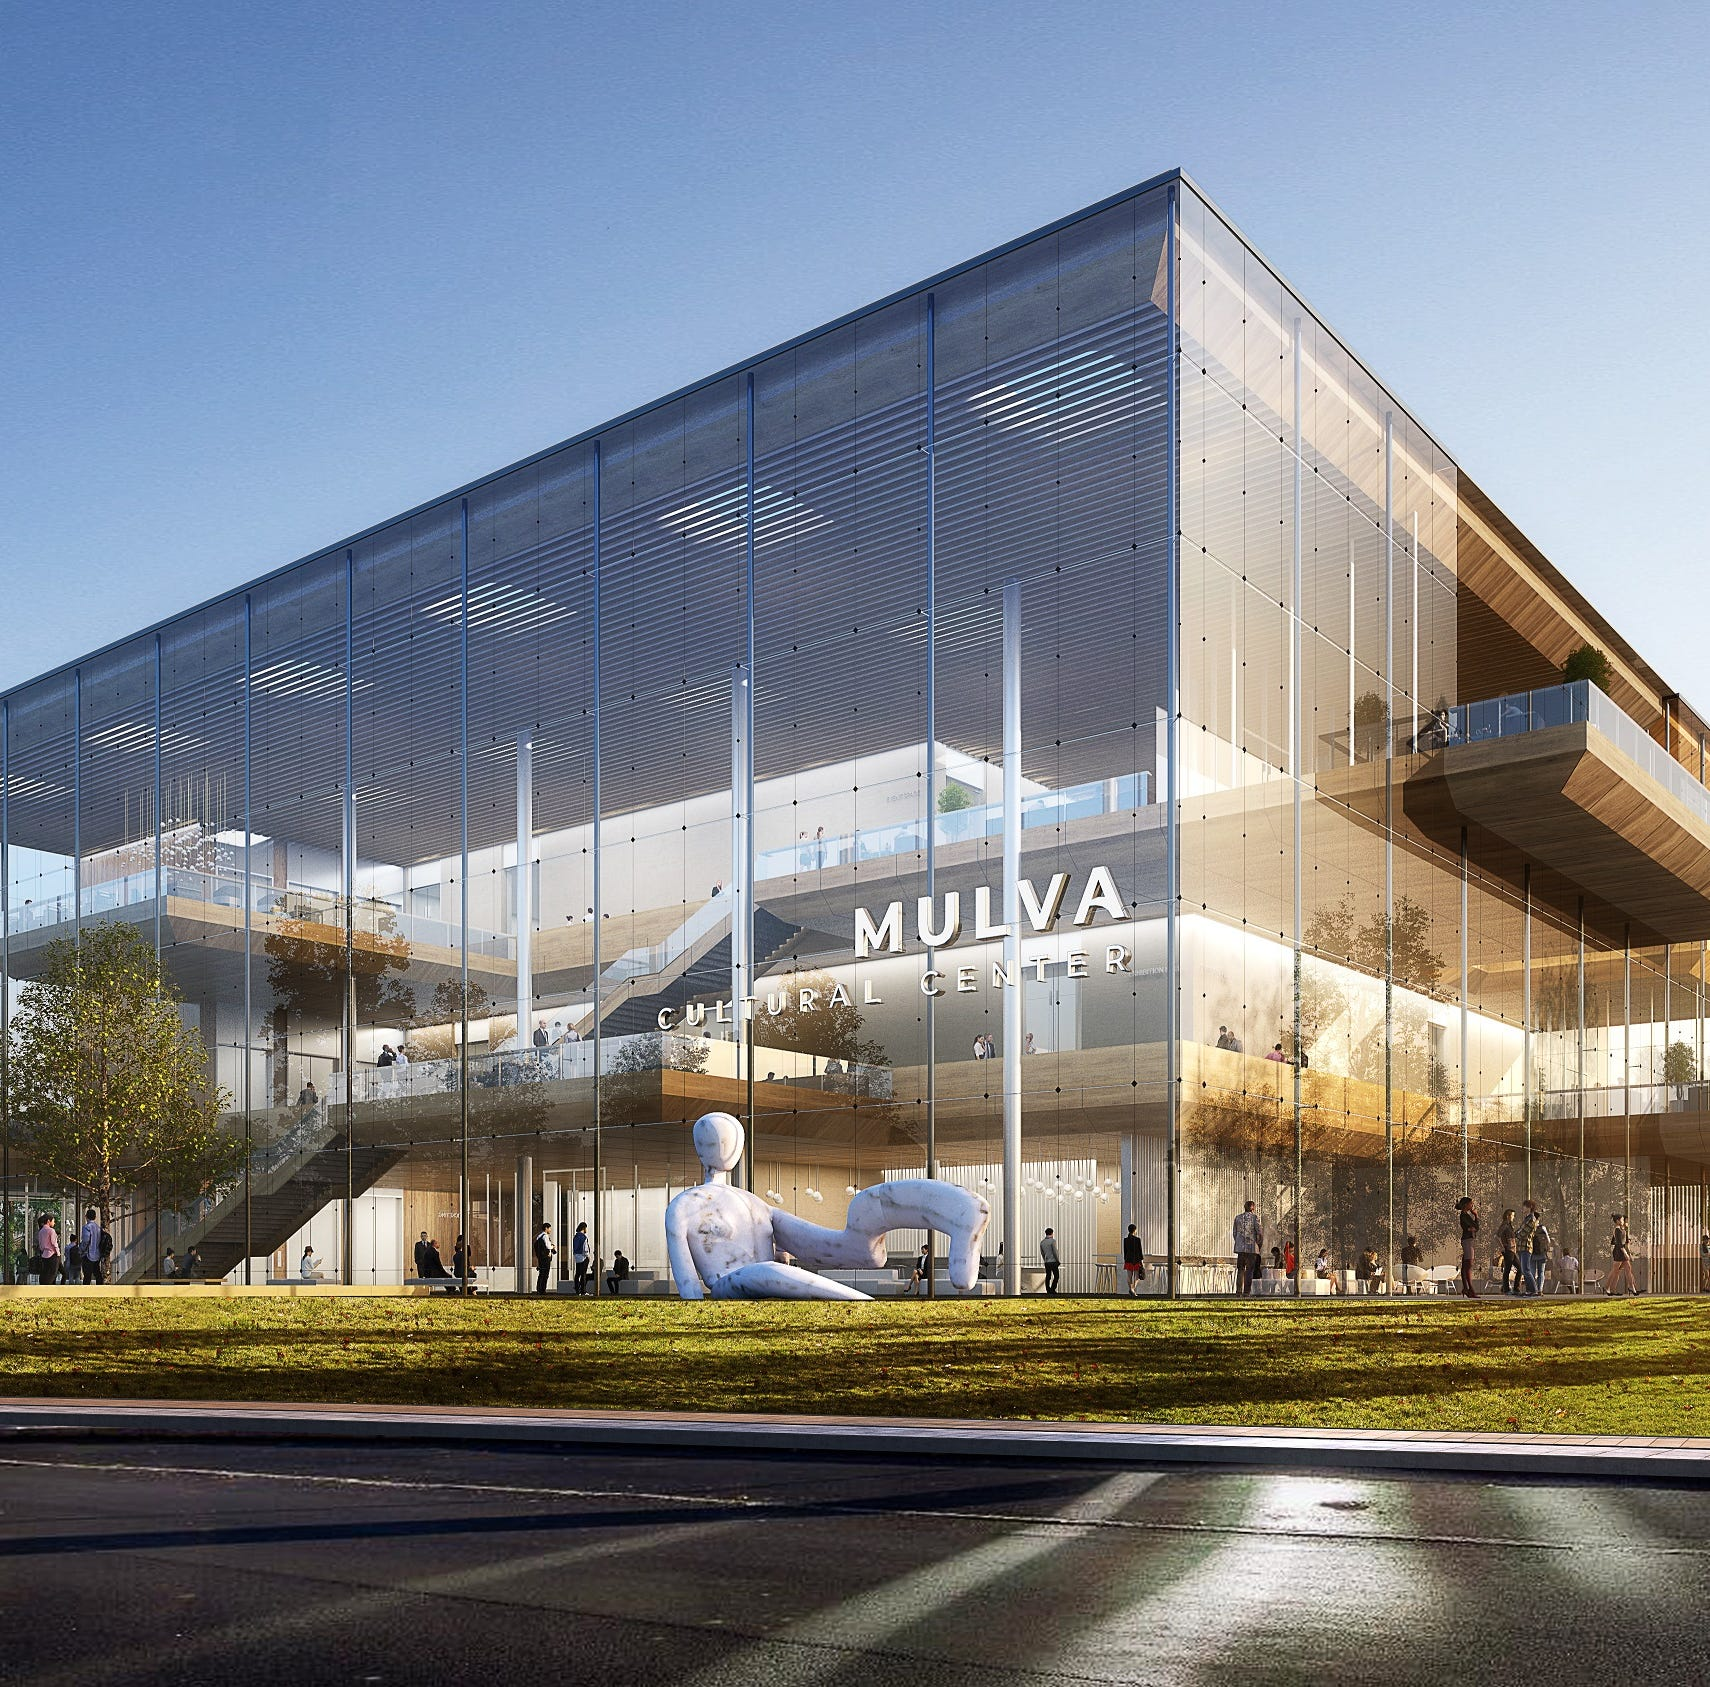 Mulva family to donate $50 million for 'world-class' cultural center in De Pere